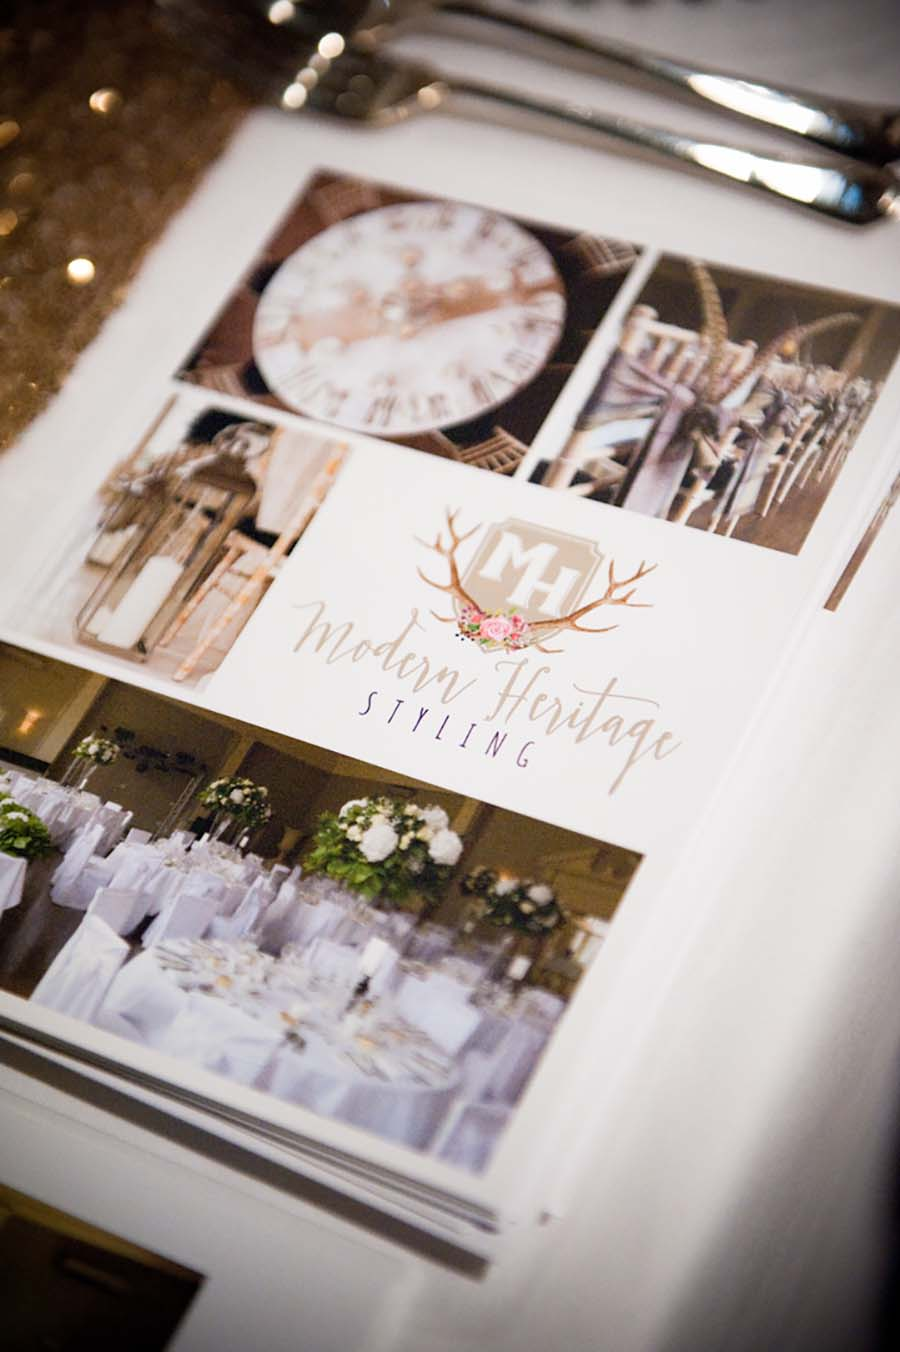 Buckinghams-at-belvoir-castle-wedding-fair-rachael-connerton-photography-52